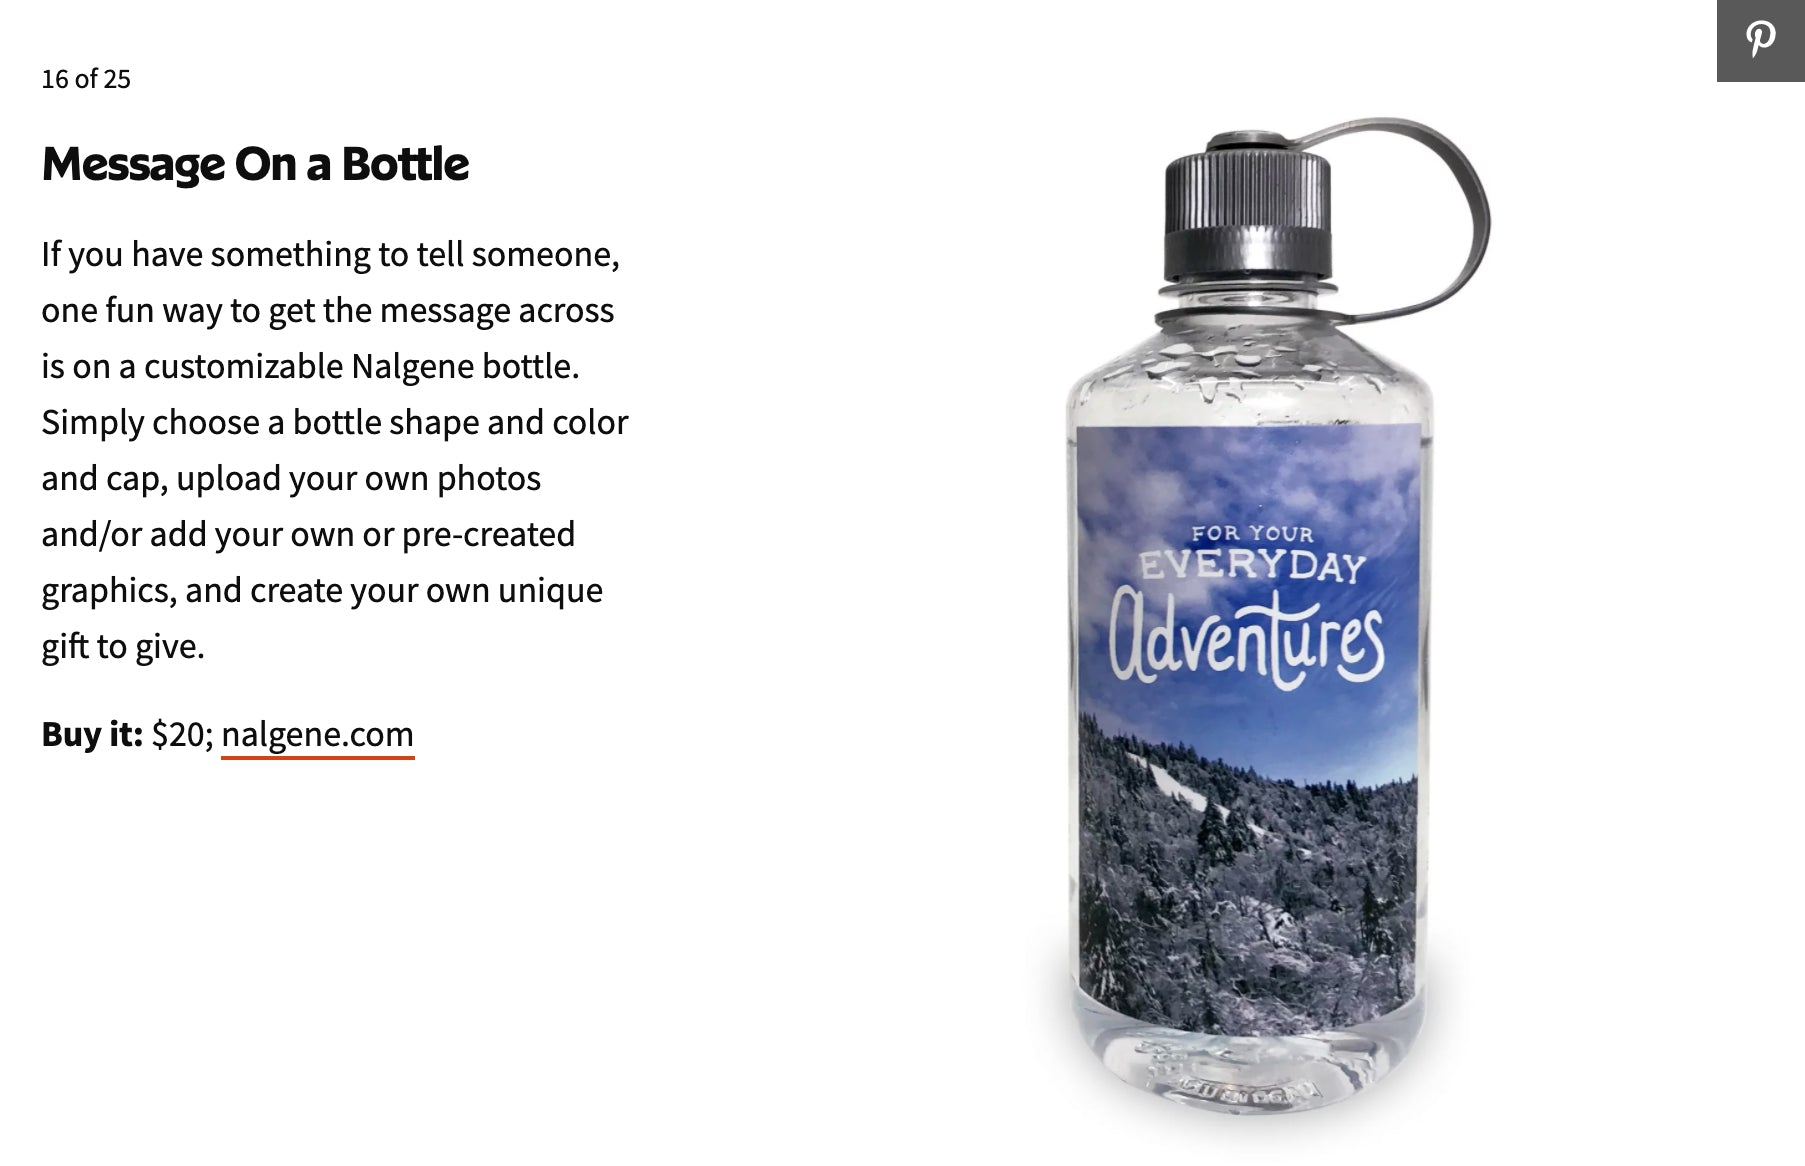 Message on a bottle